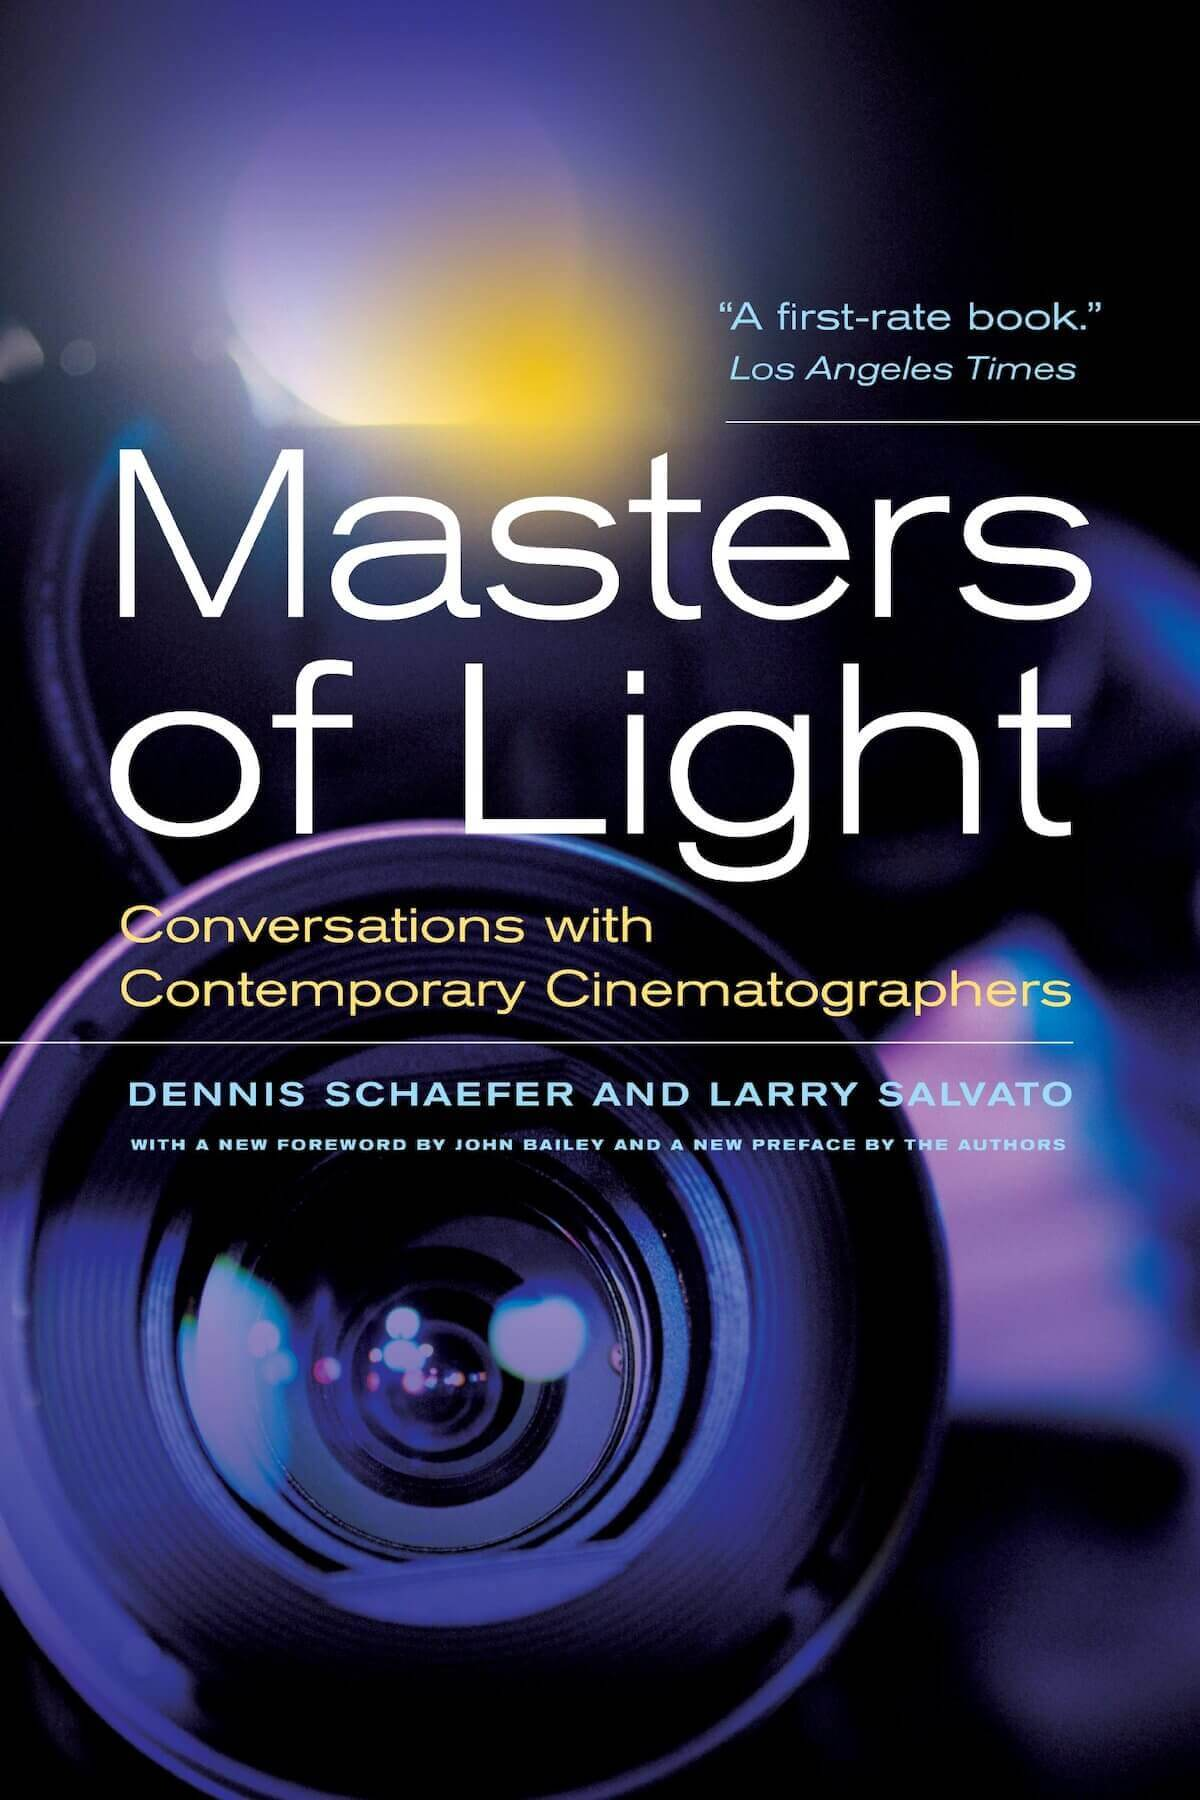 Best Cinematography Books - Dennis Schaefer Larry Salvato - Masters of Light